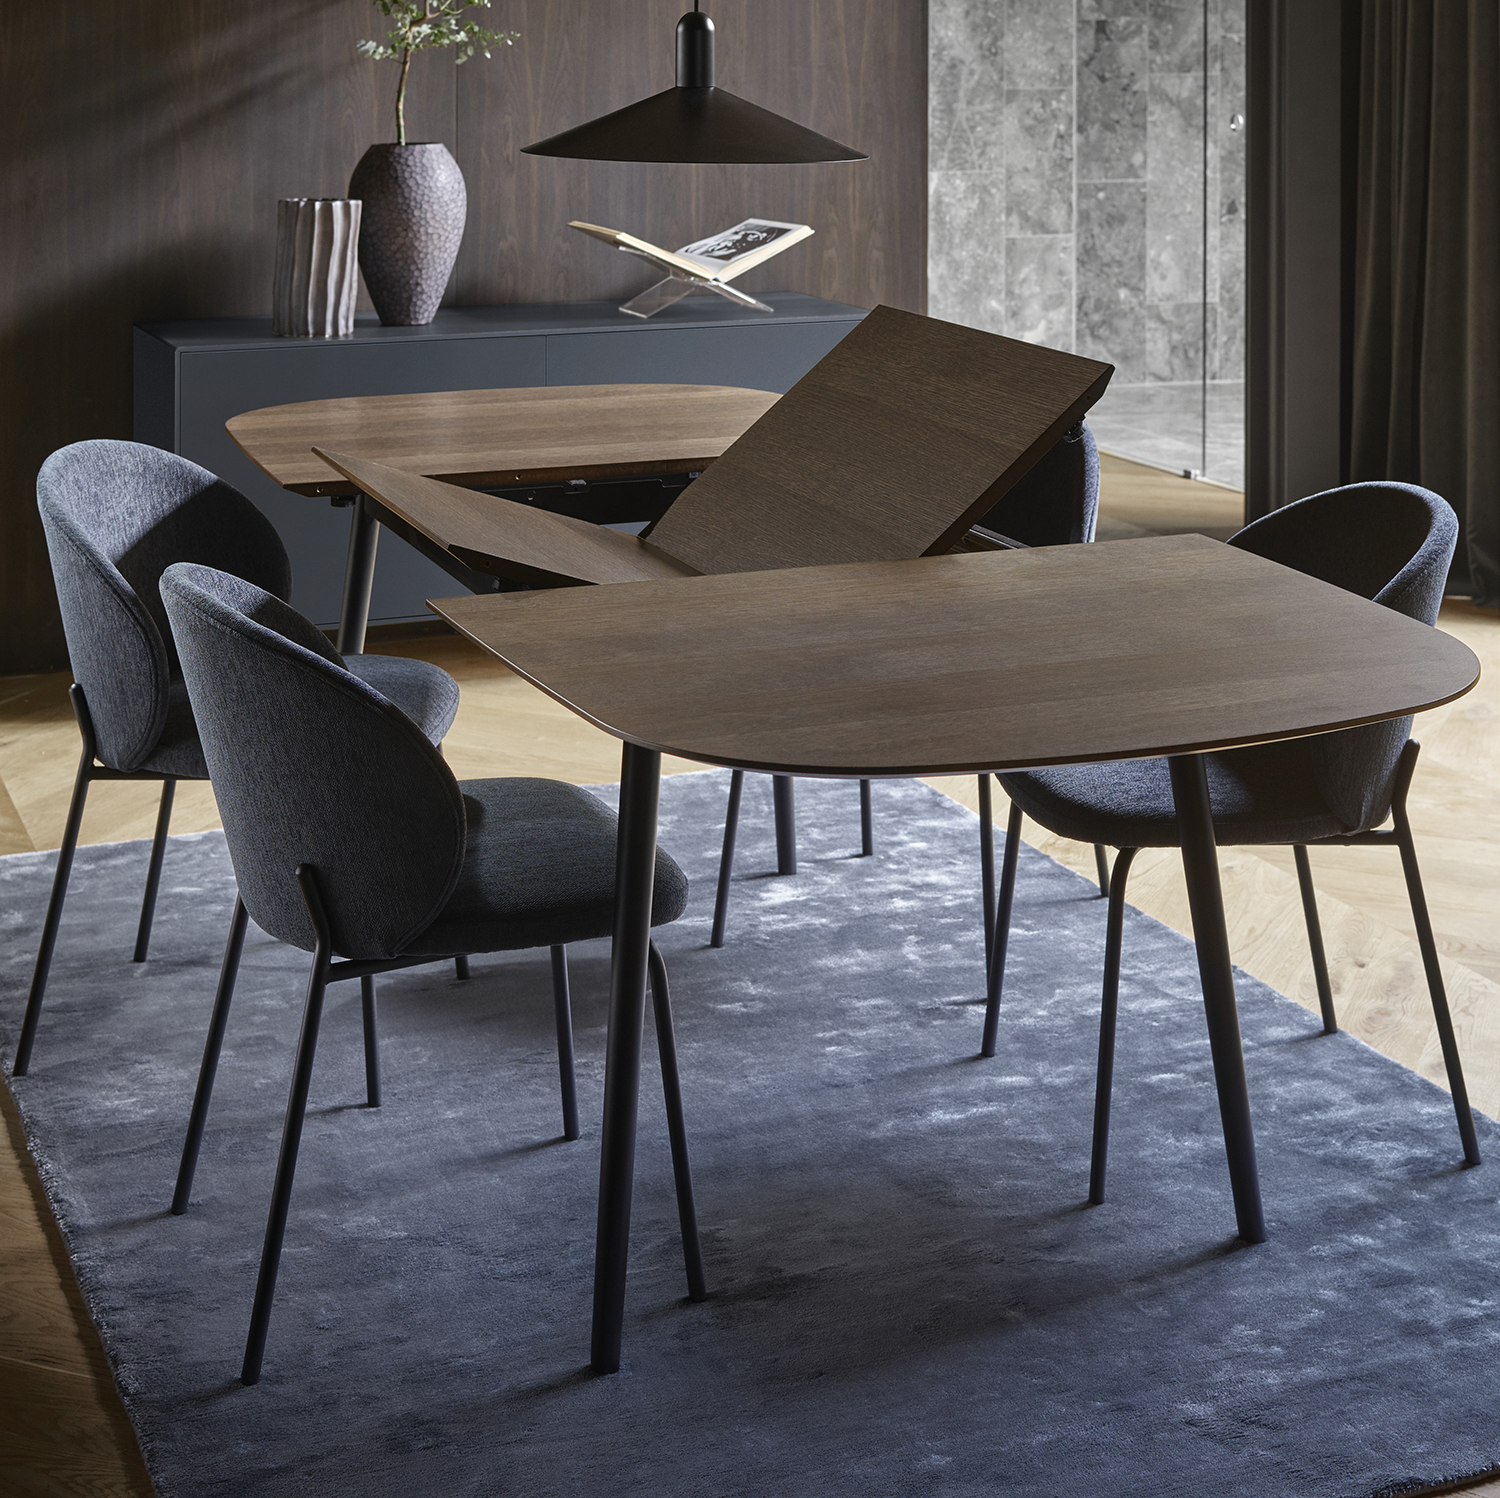 kingston extendable dining table sydney